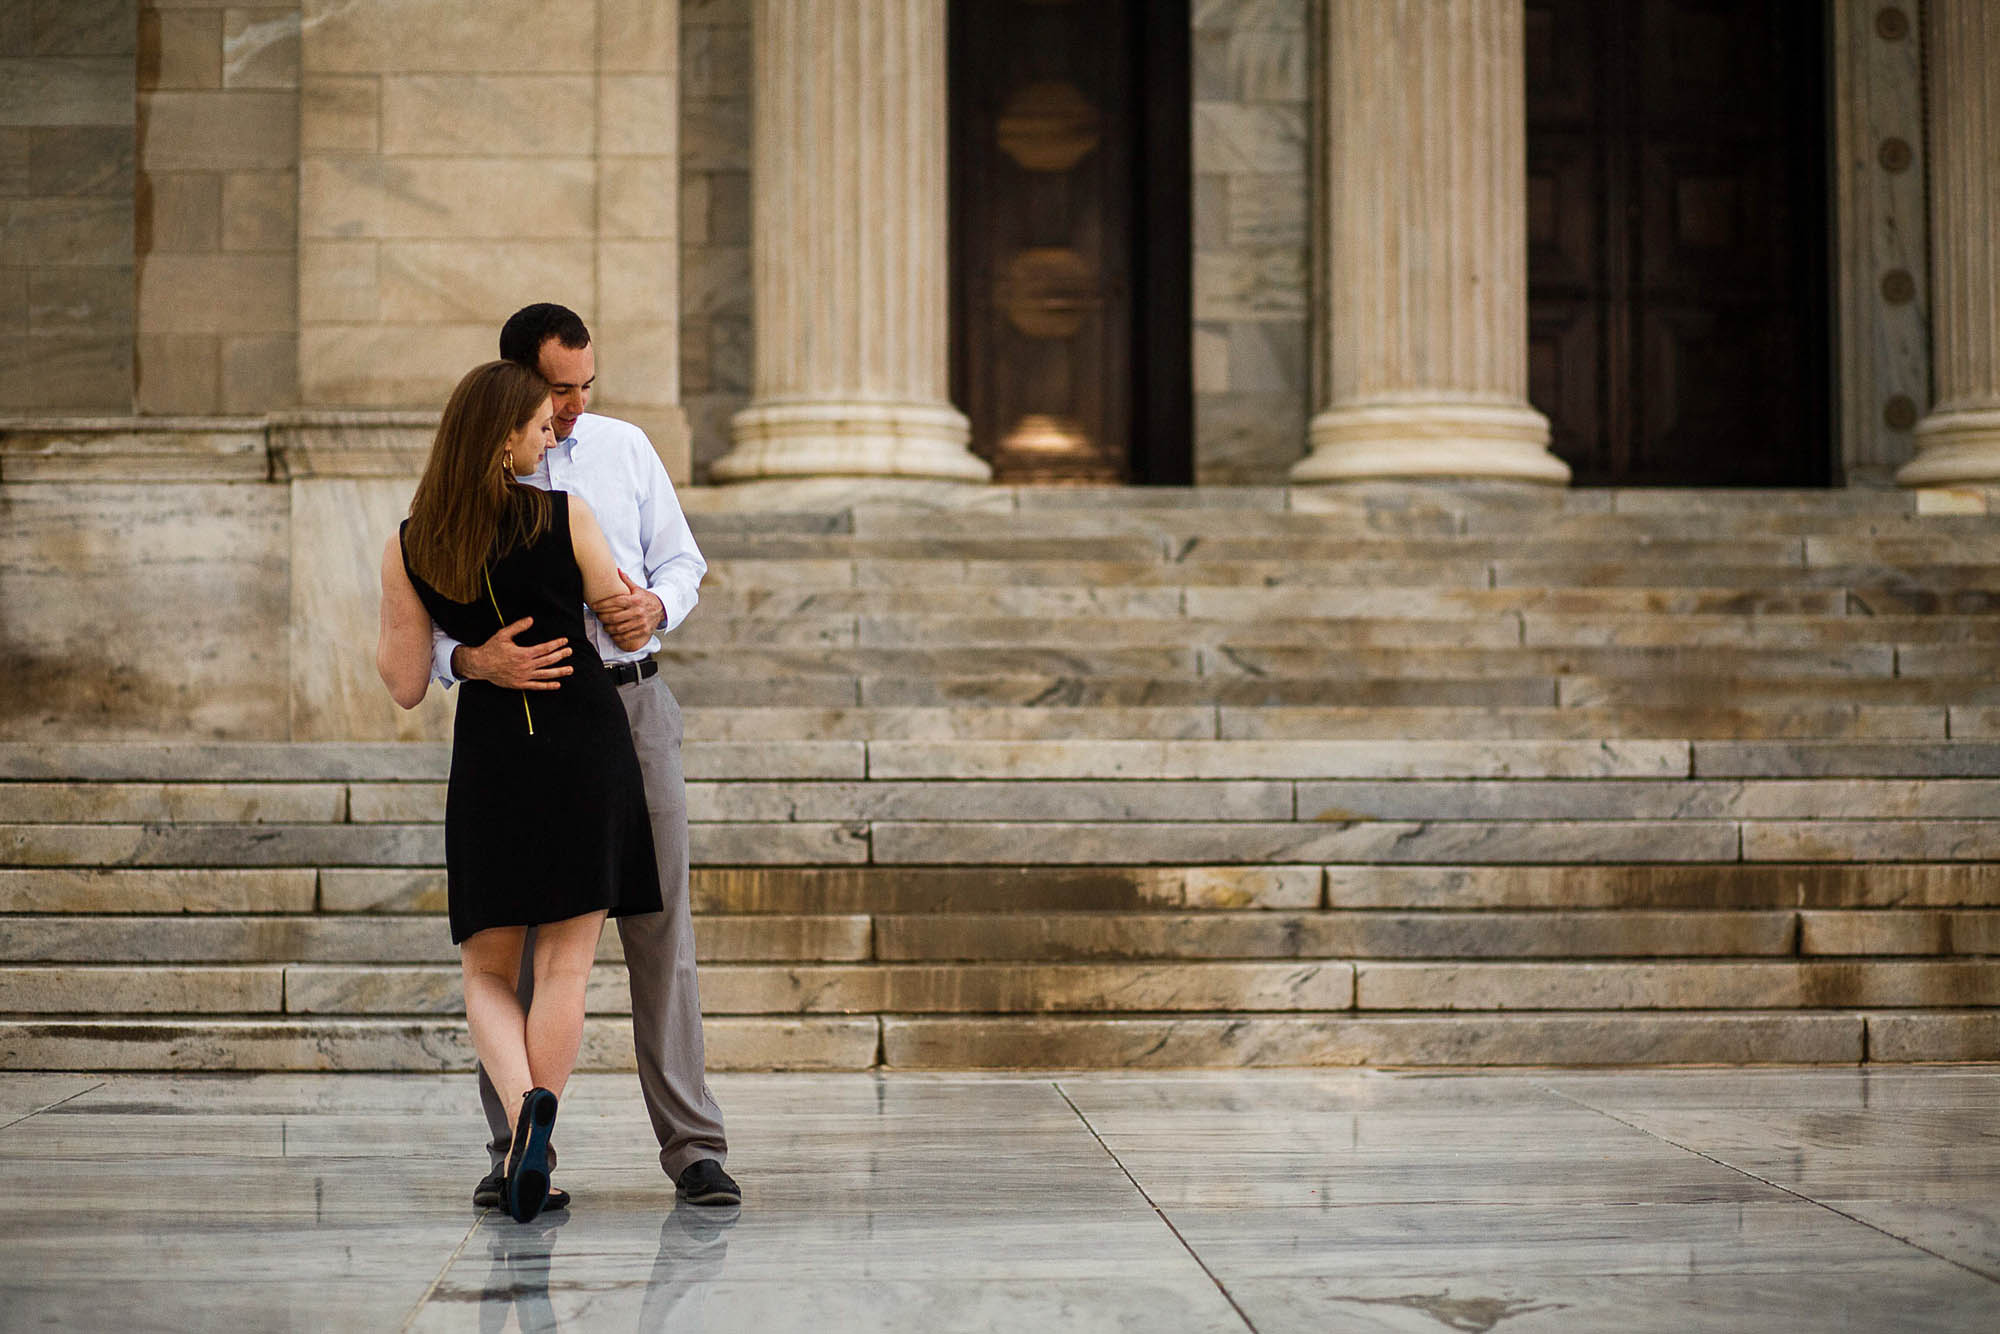 An engaged couple stand in the left of the photo holding each other with the woman's back to the camera standing outside the Cleveland Museum on a cement sidewalk with the stone steps and tall pillars of the building in the background behind them.